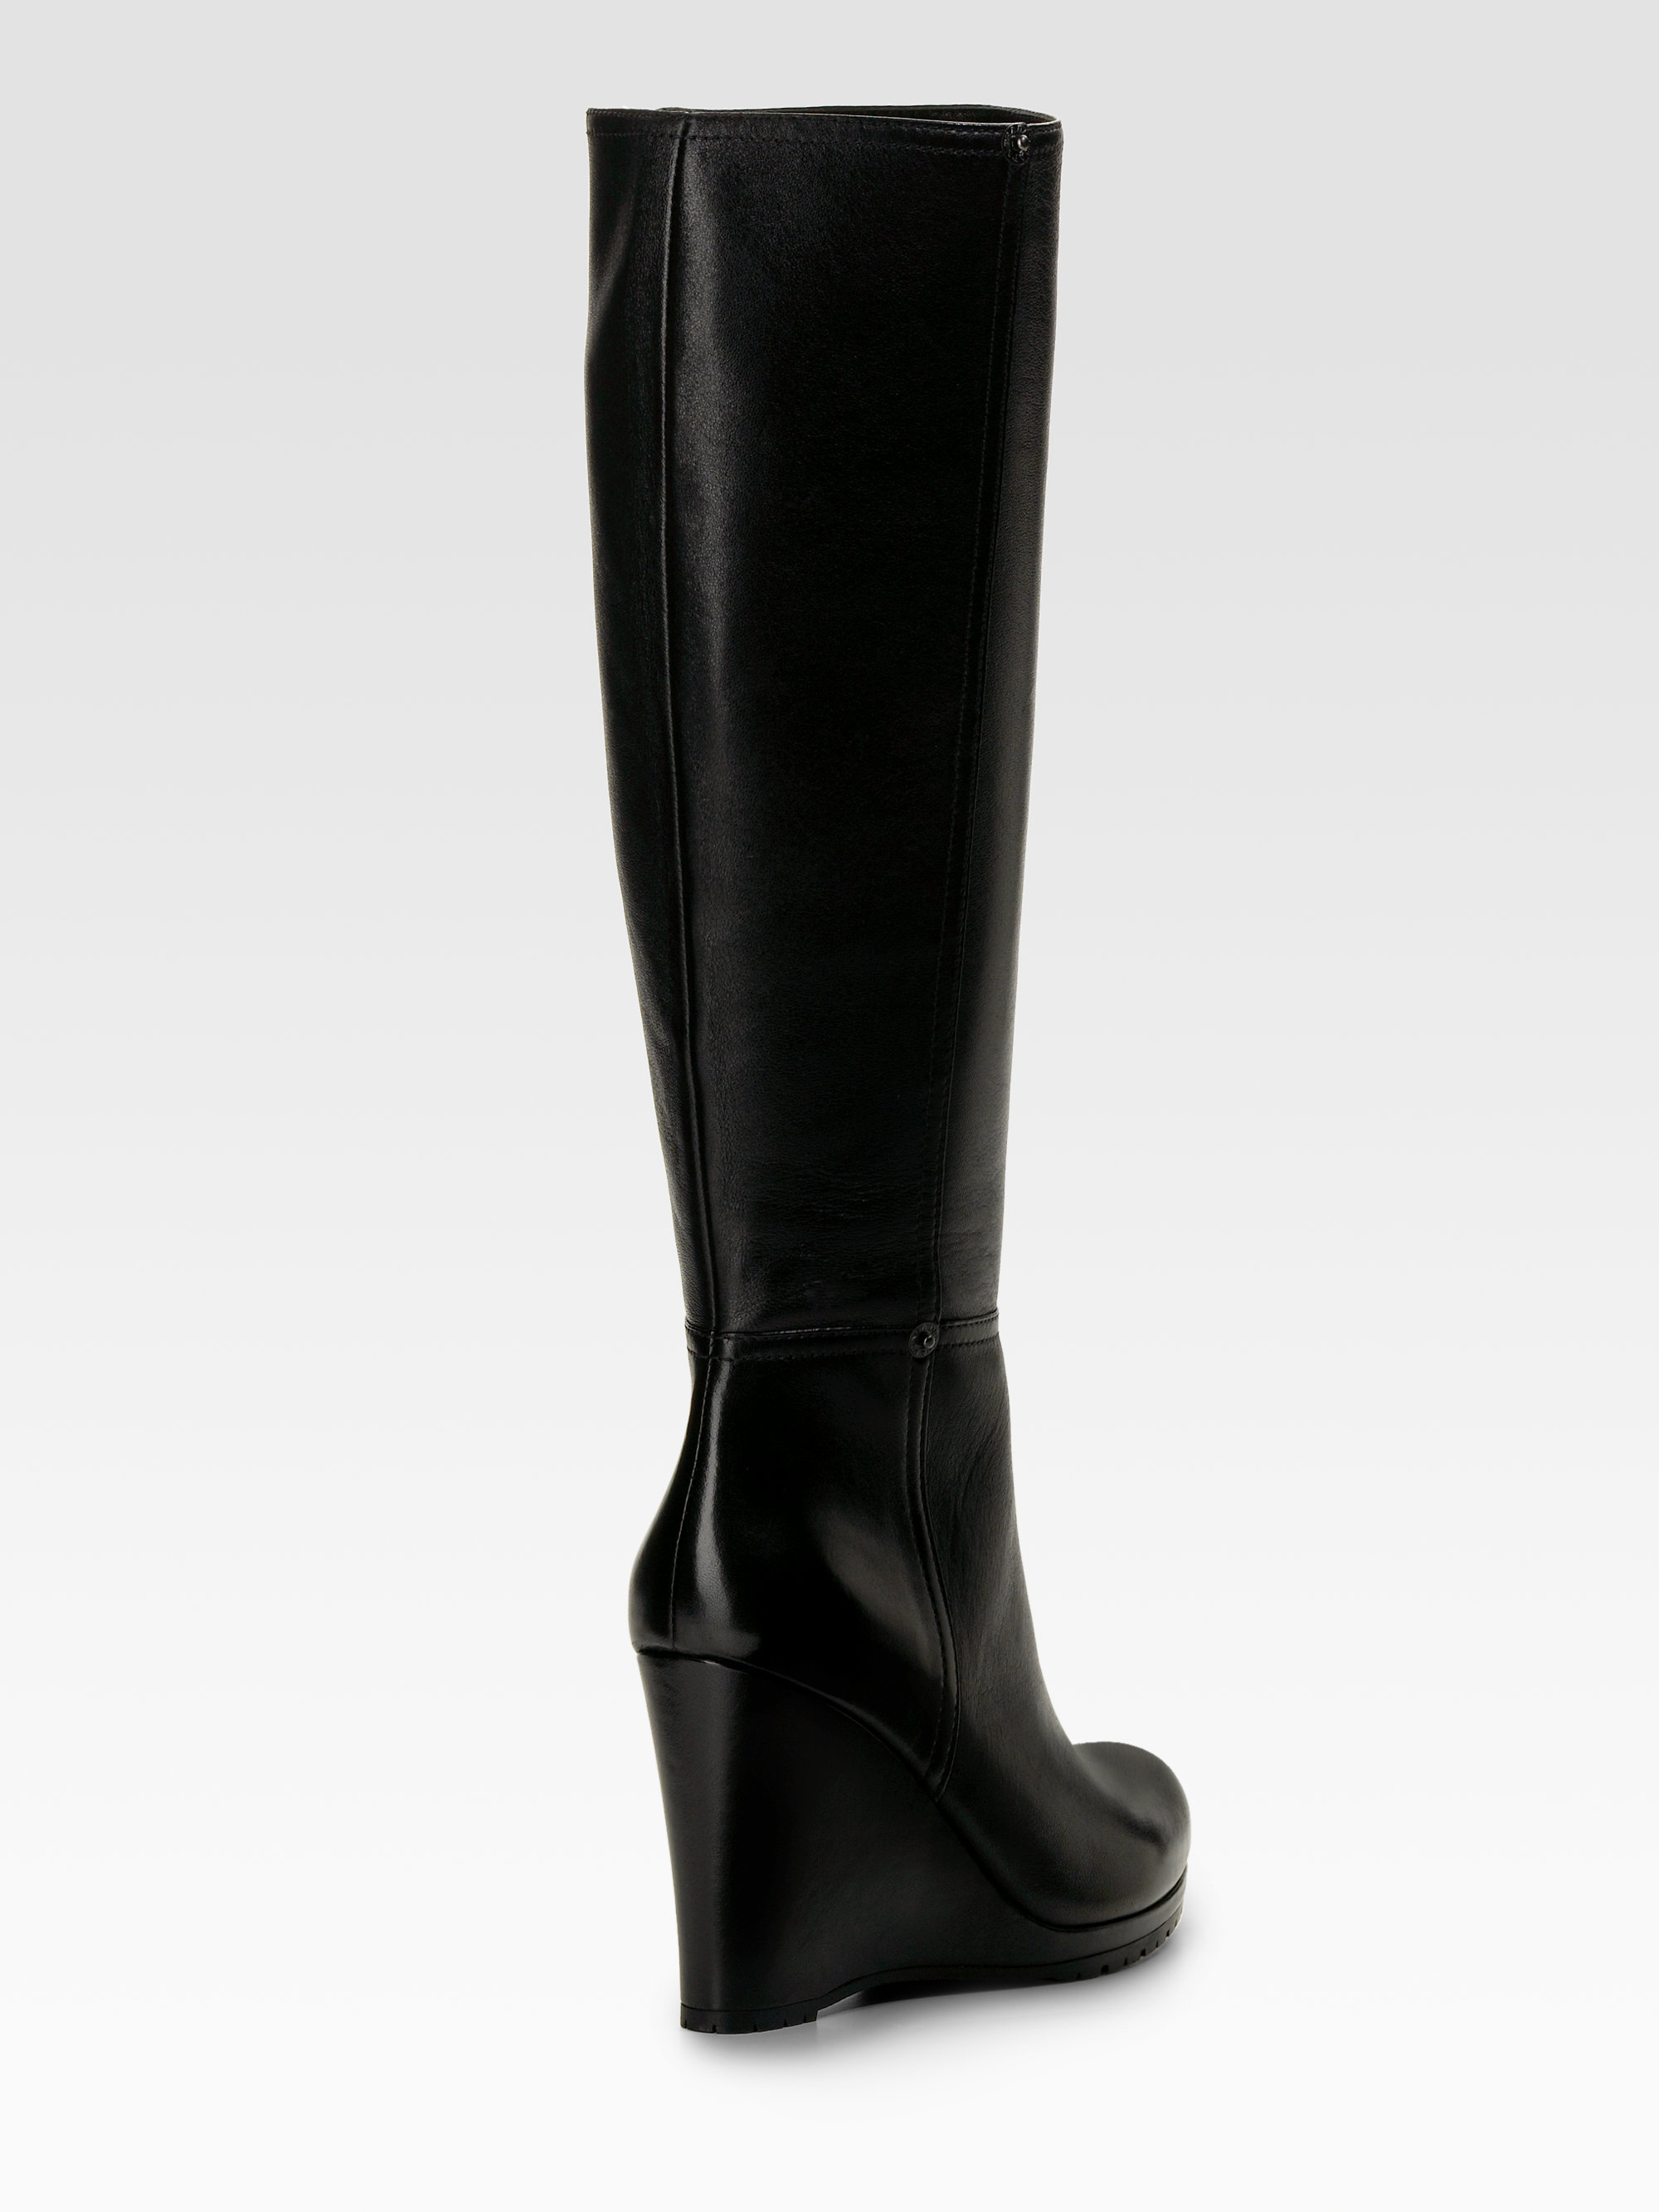 prada wedge boots in black lyst